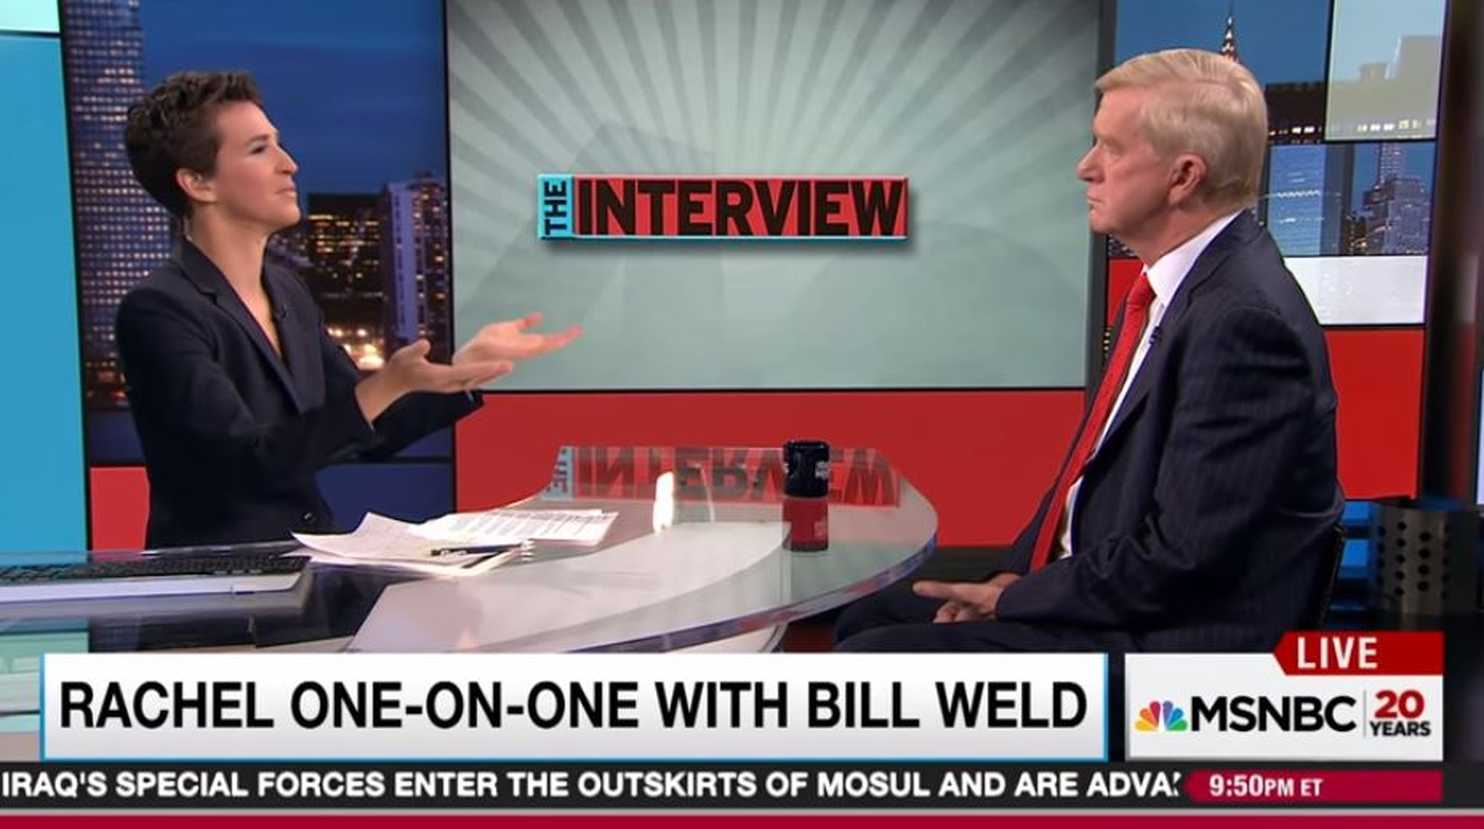 Bill Weld vouching for Hillary Clinton one week before running against her. ||| MSNBC